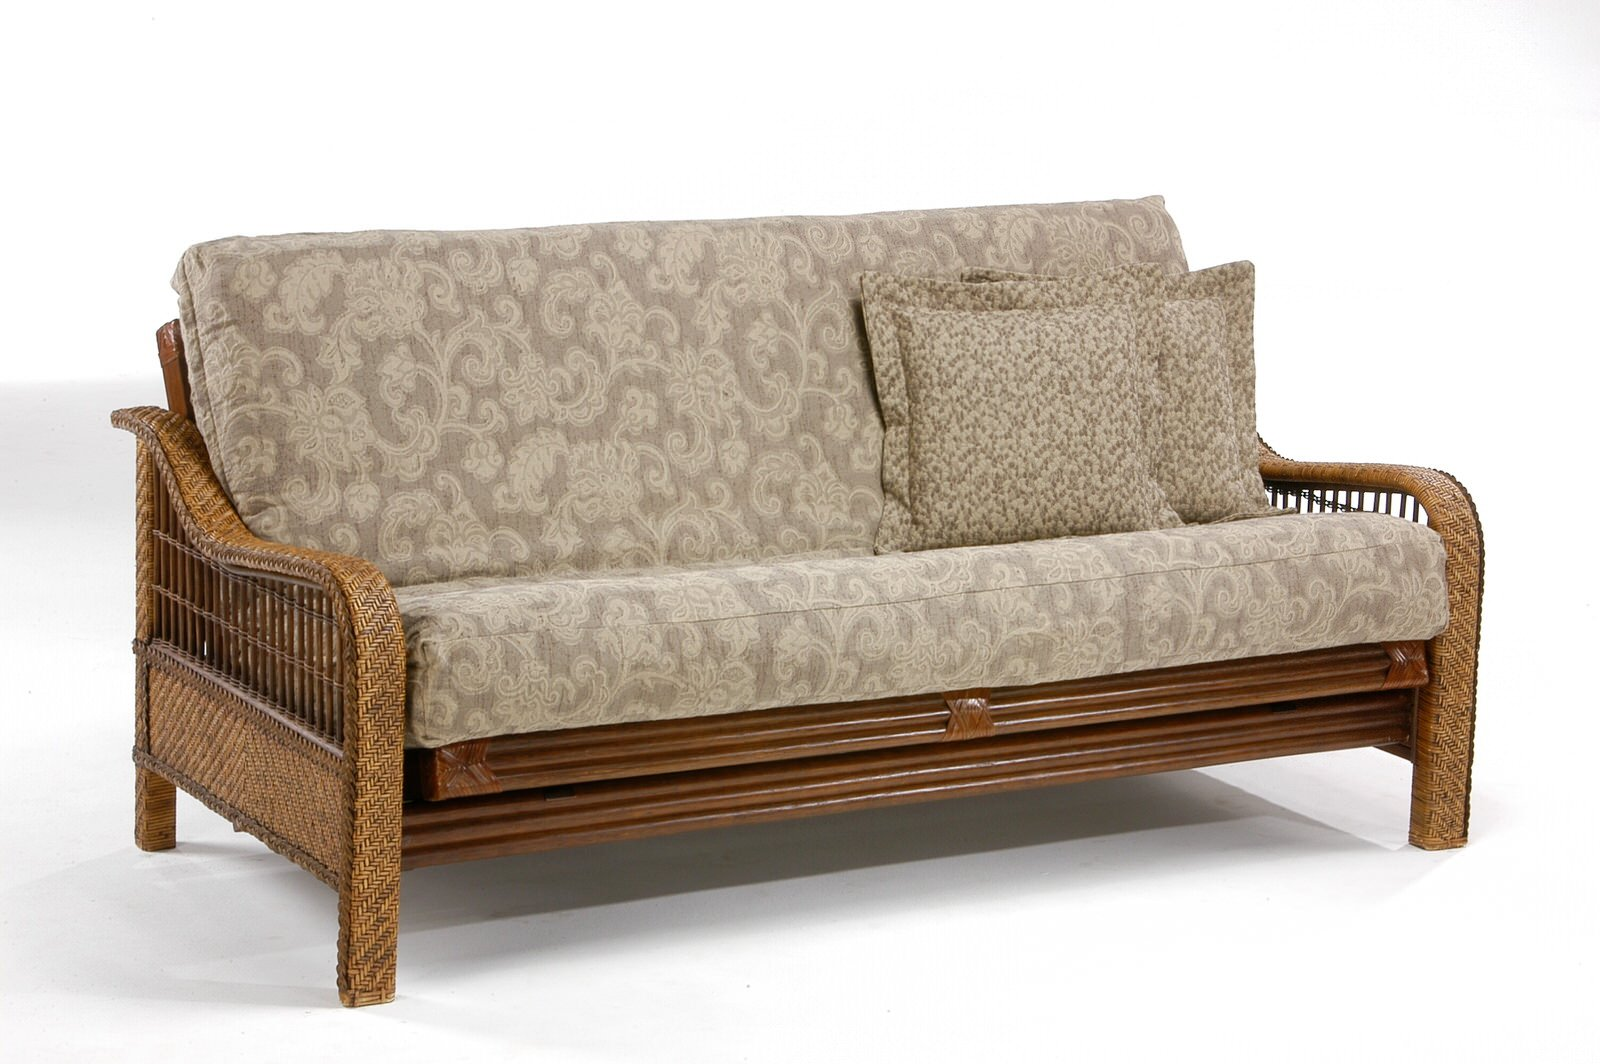 orchid rattan futon frame by nightday furniture